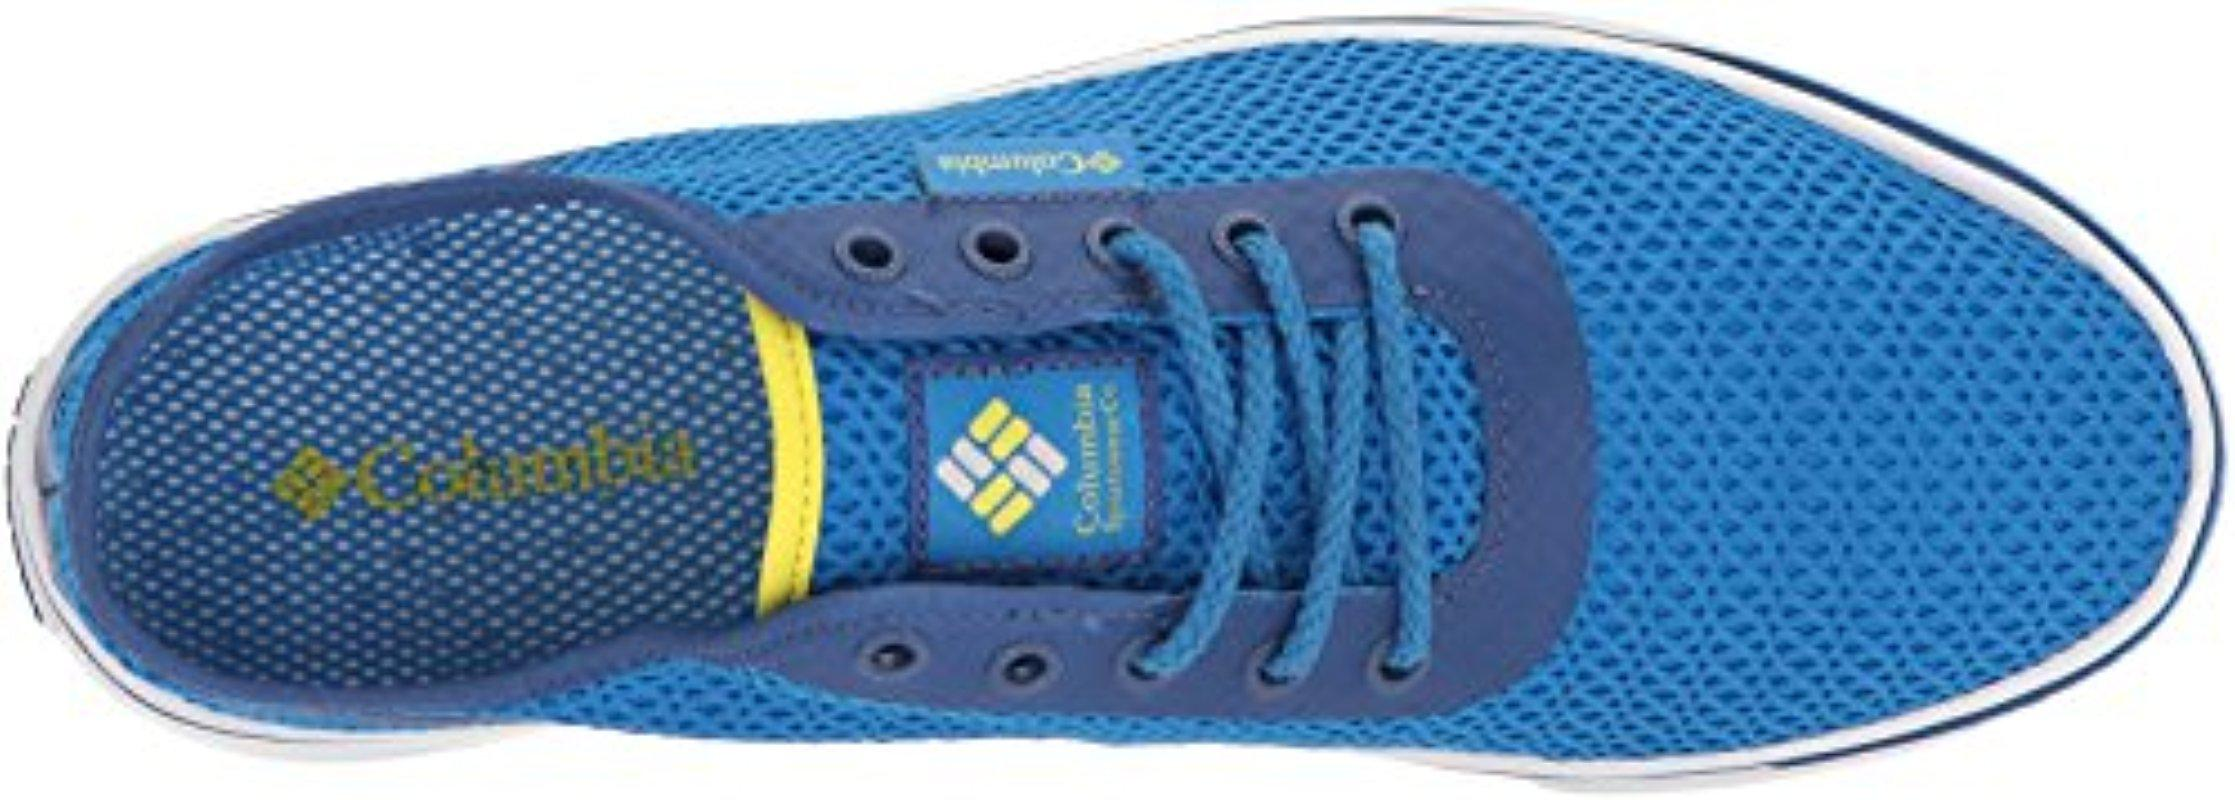 66afc14d854f Lyst - Columbia Spinner Vent Water Shoe in Blue for Men